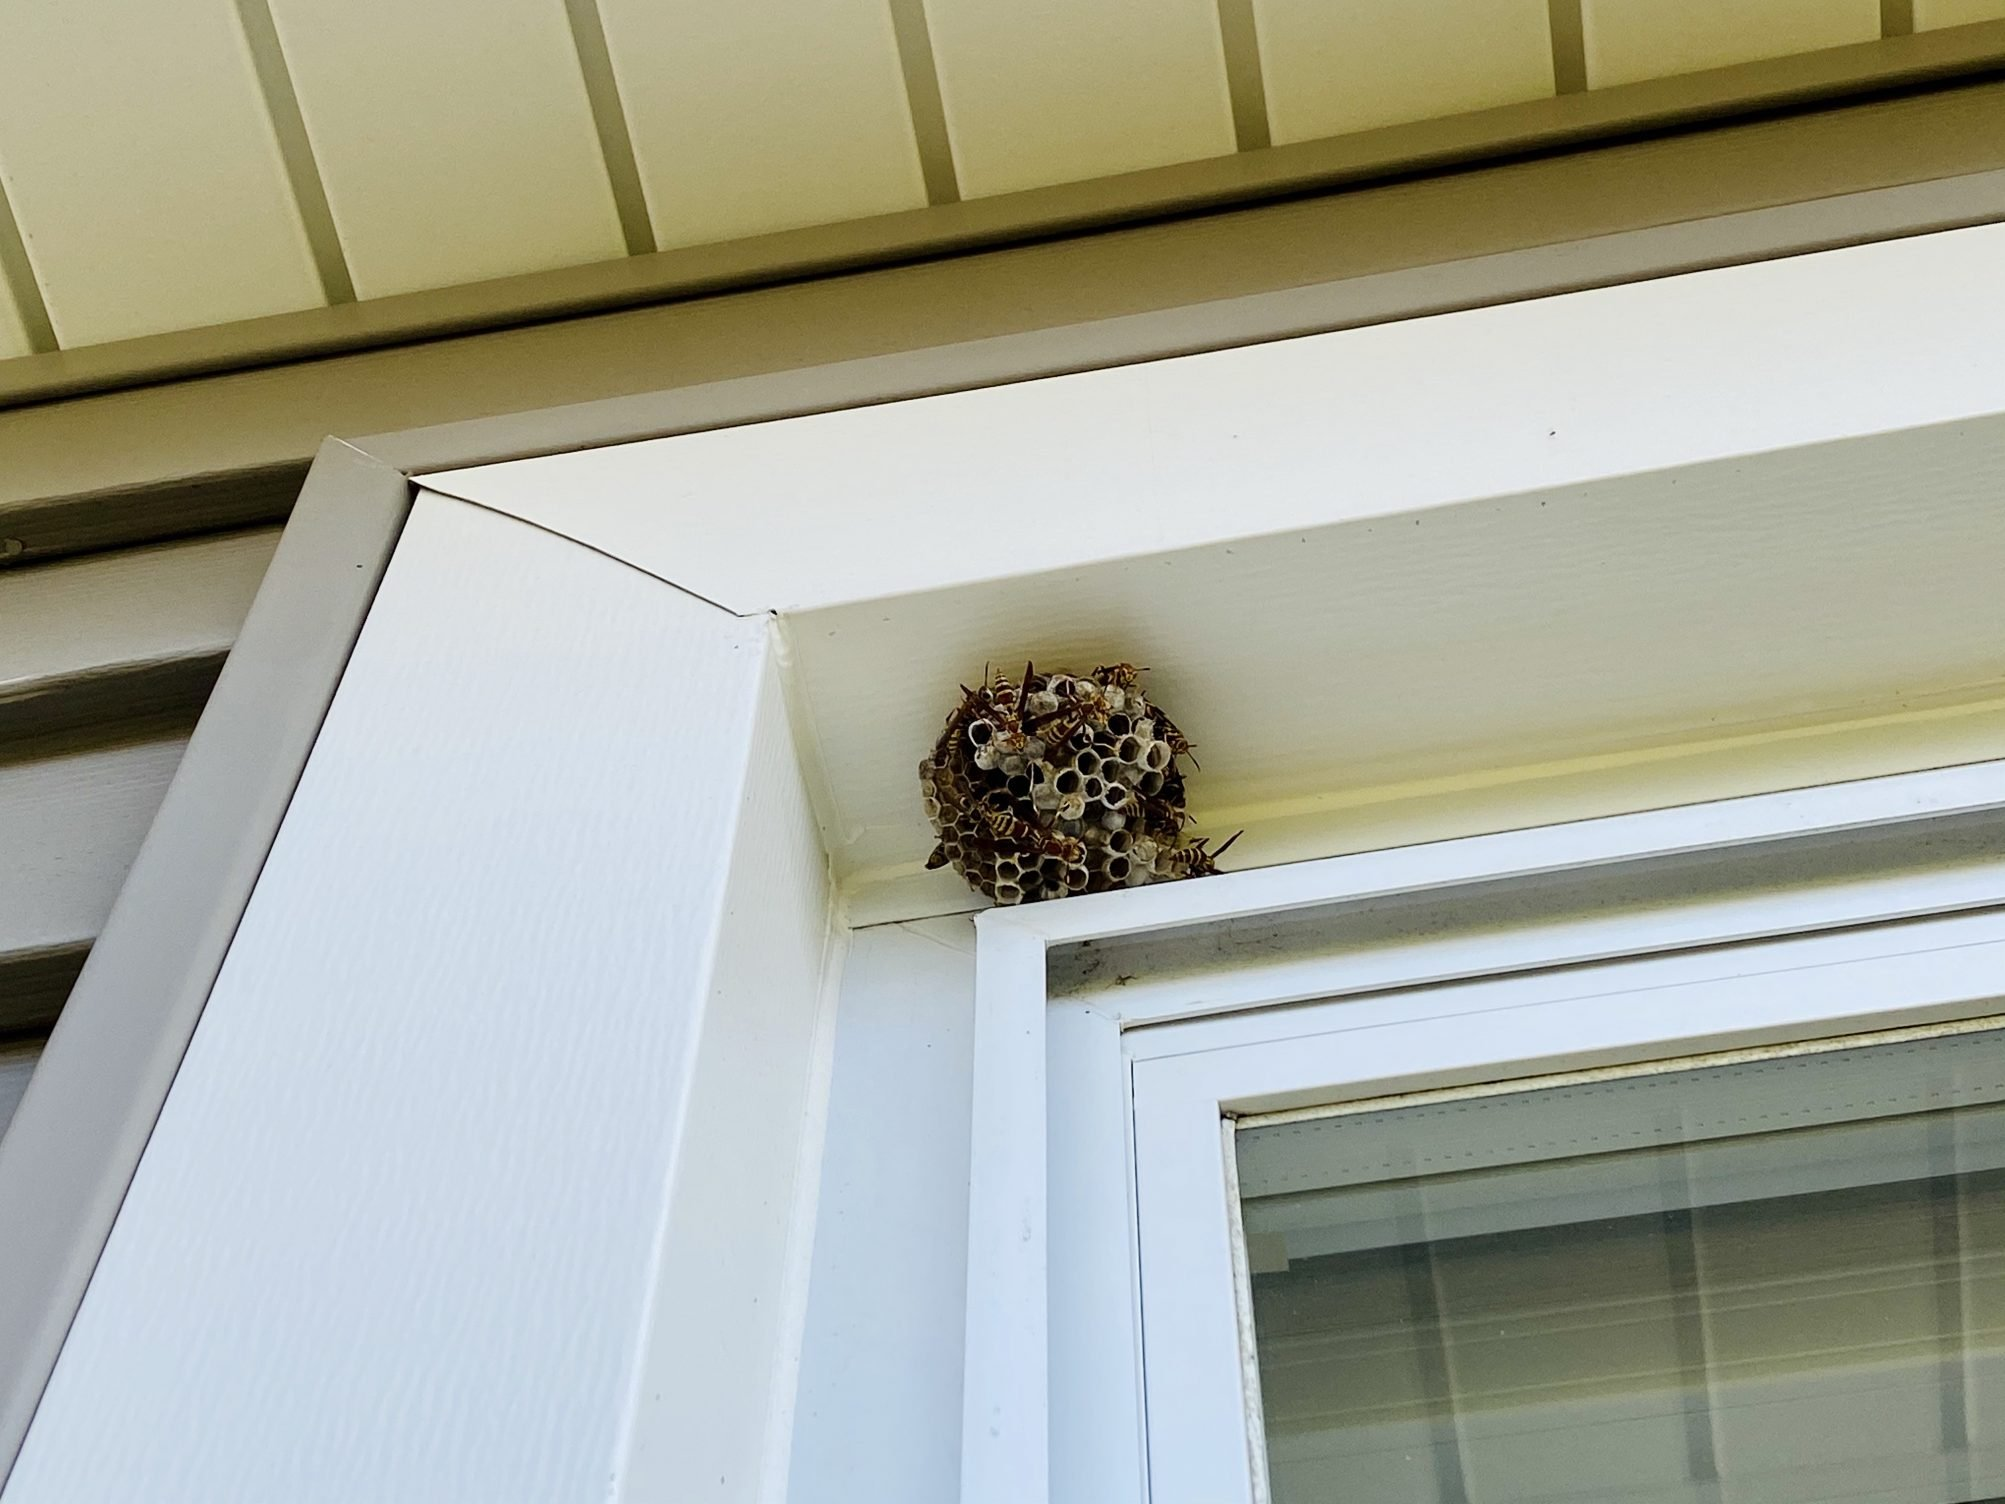 take care of a wasp nest